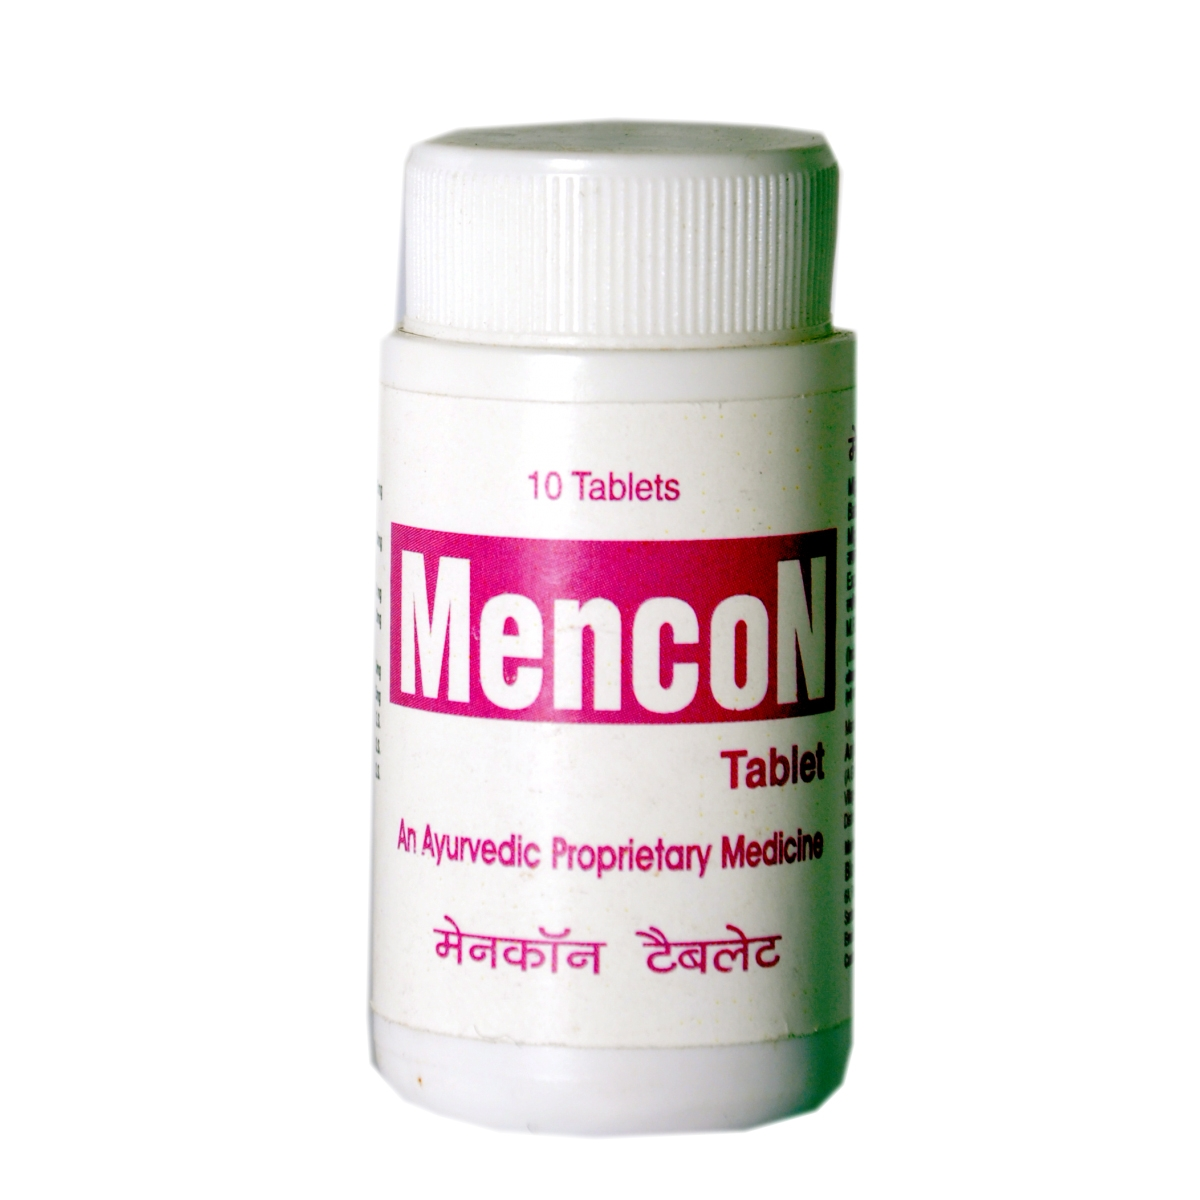 Mencon Tablet In Kurung Kumey